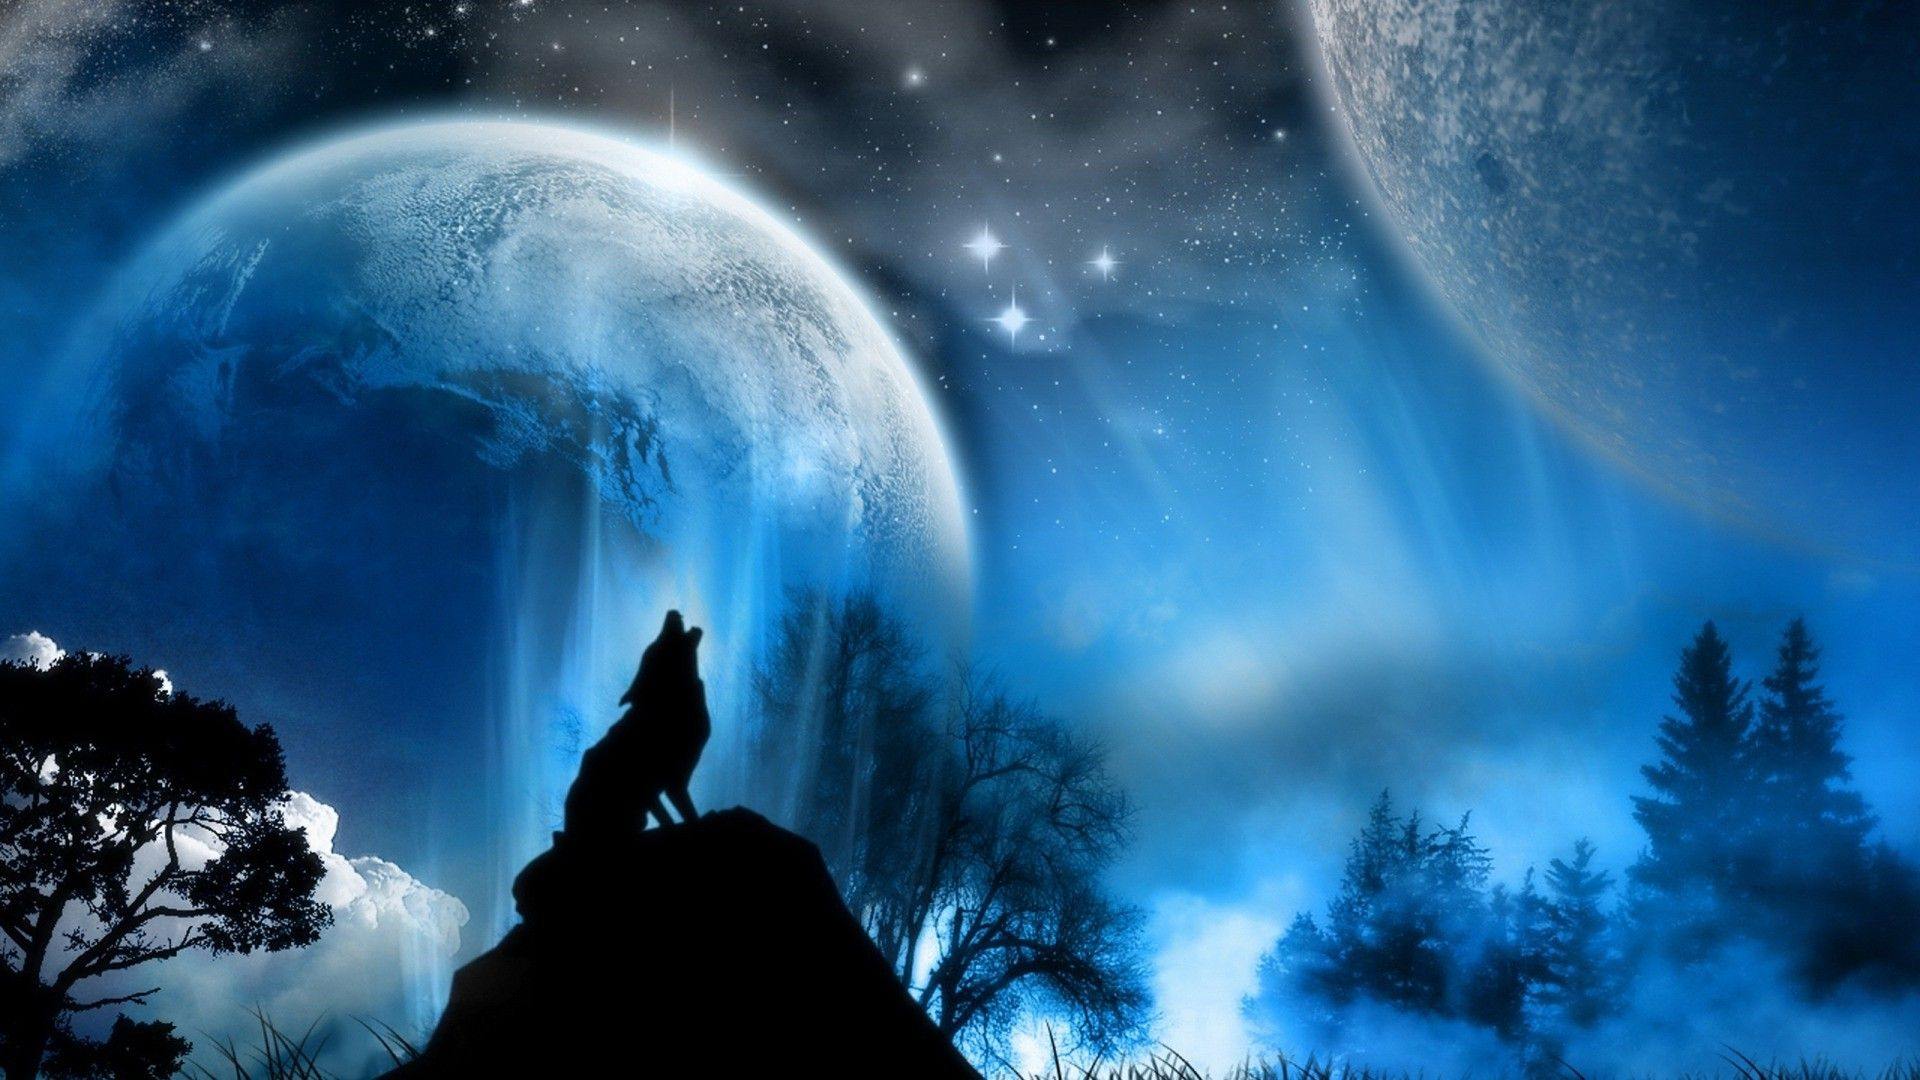 Howling Wolf Wallpaper Phone With HD Desktop 1920x1080 Px 34557 KB